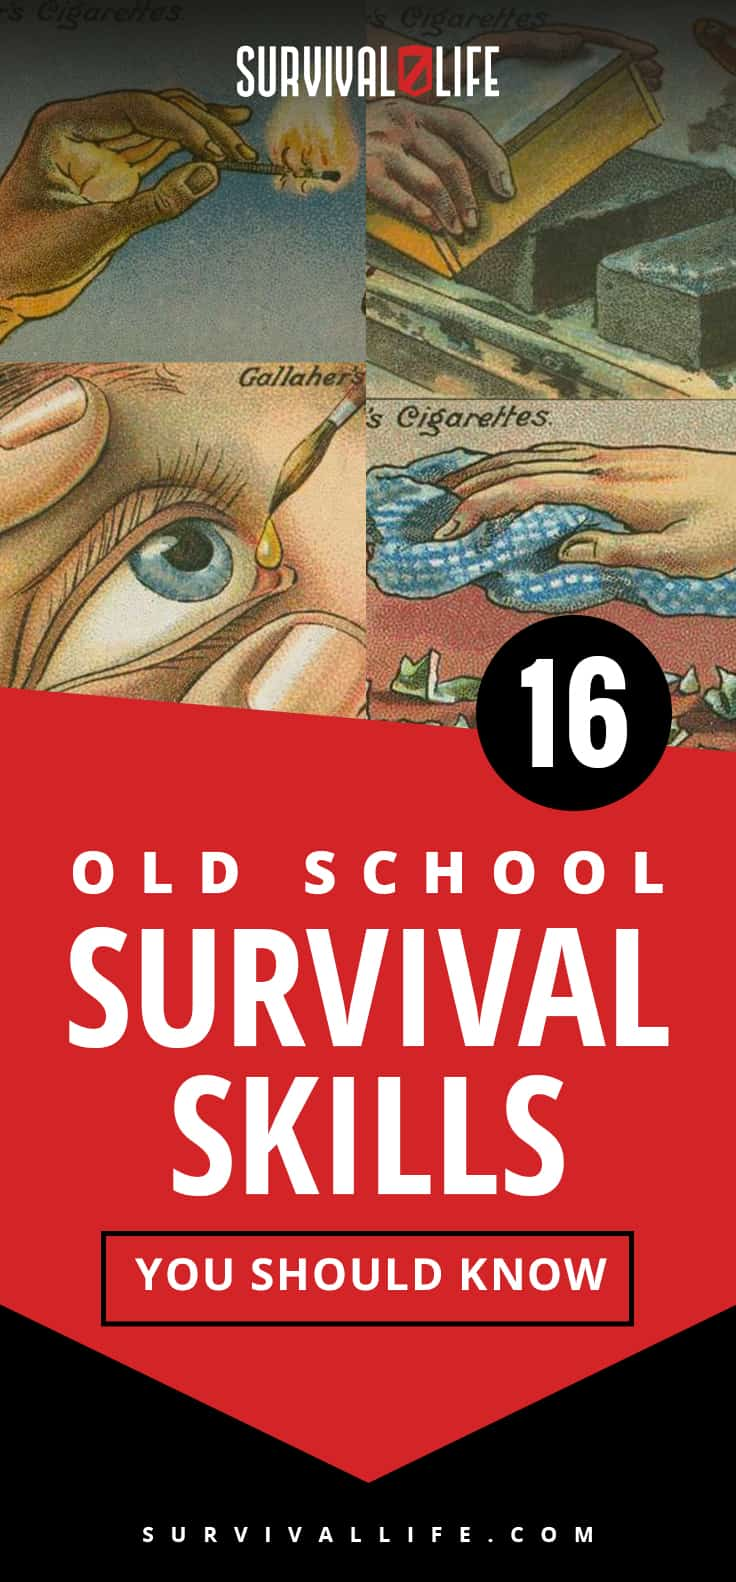 Survival Skills | 16 Old School Survival Skills You Should Know